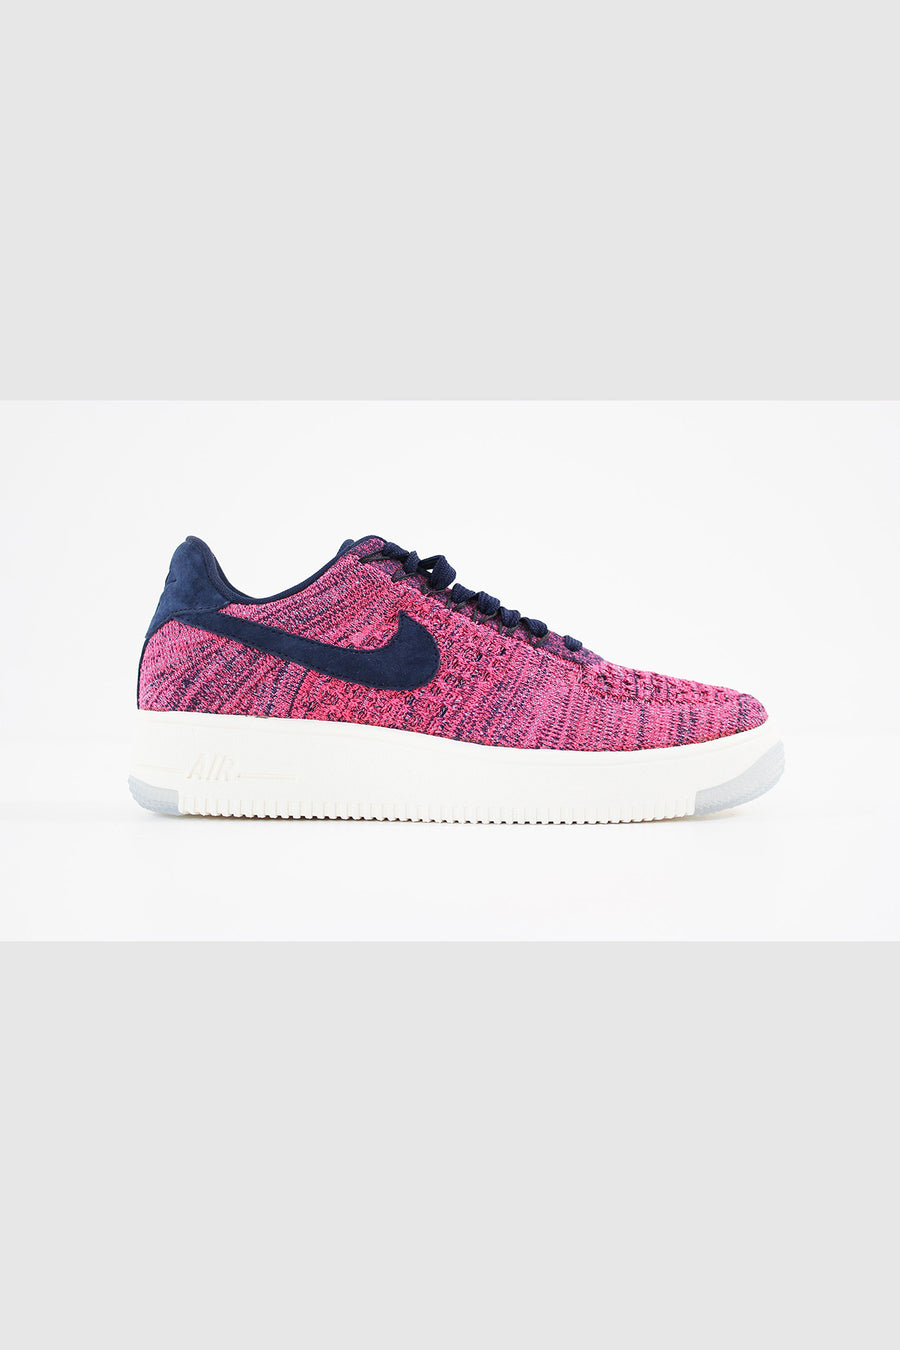 Nike - Air Force 1 Flyknit Low Sneaker für Damen in Pink  820256-401